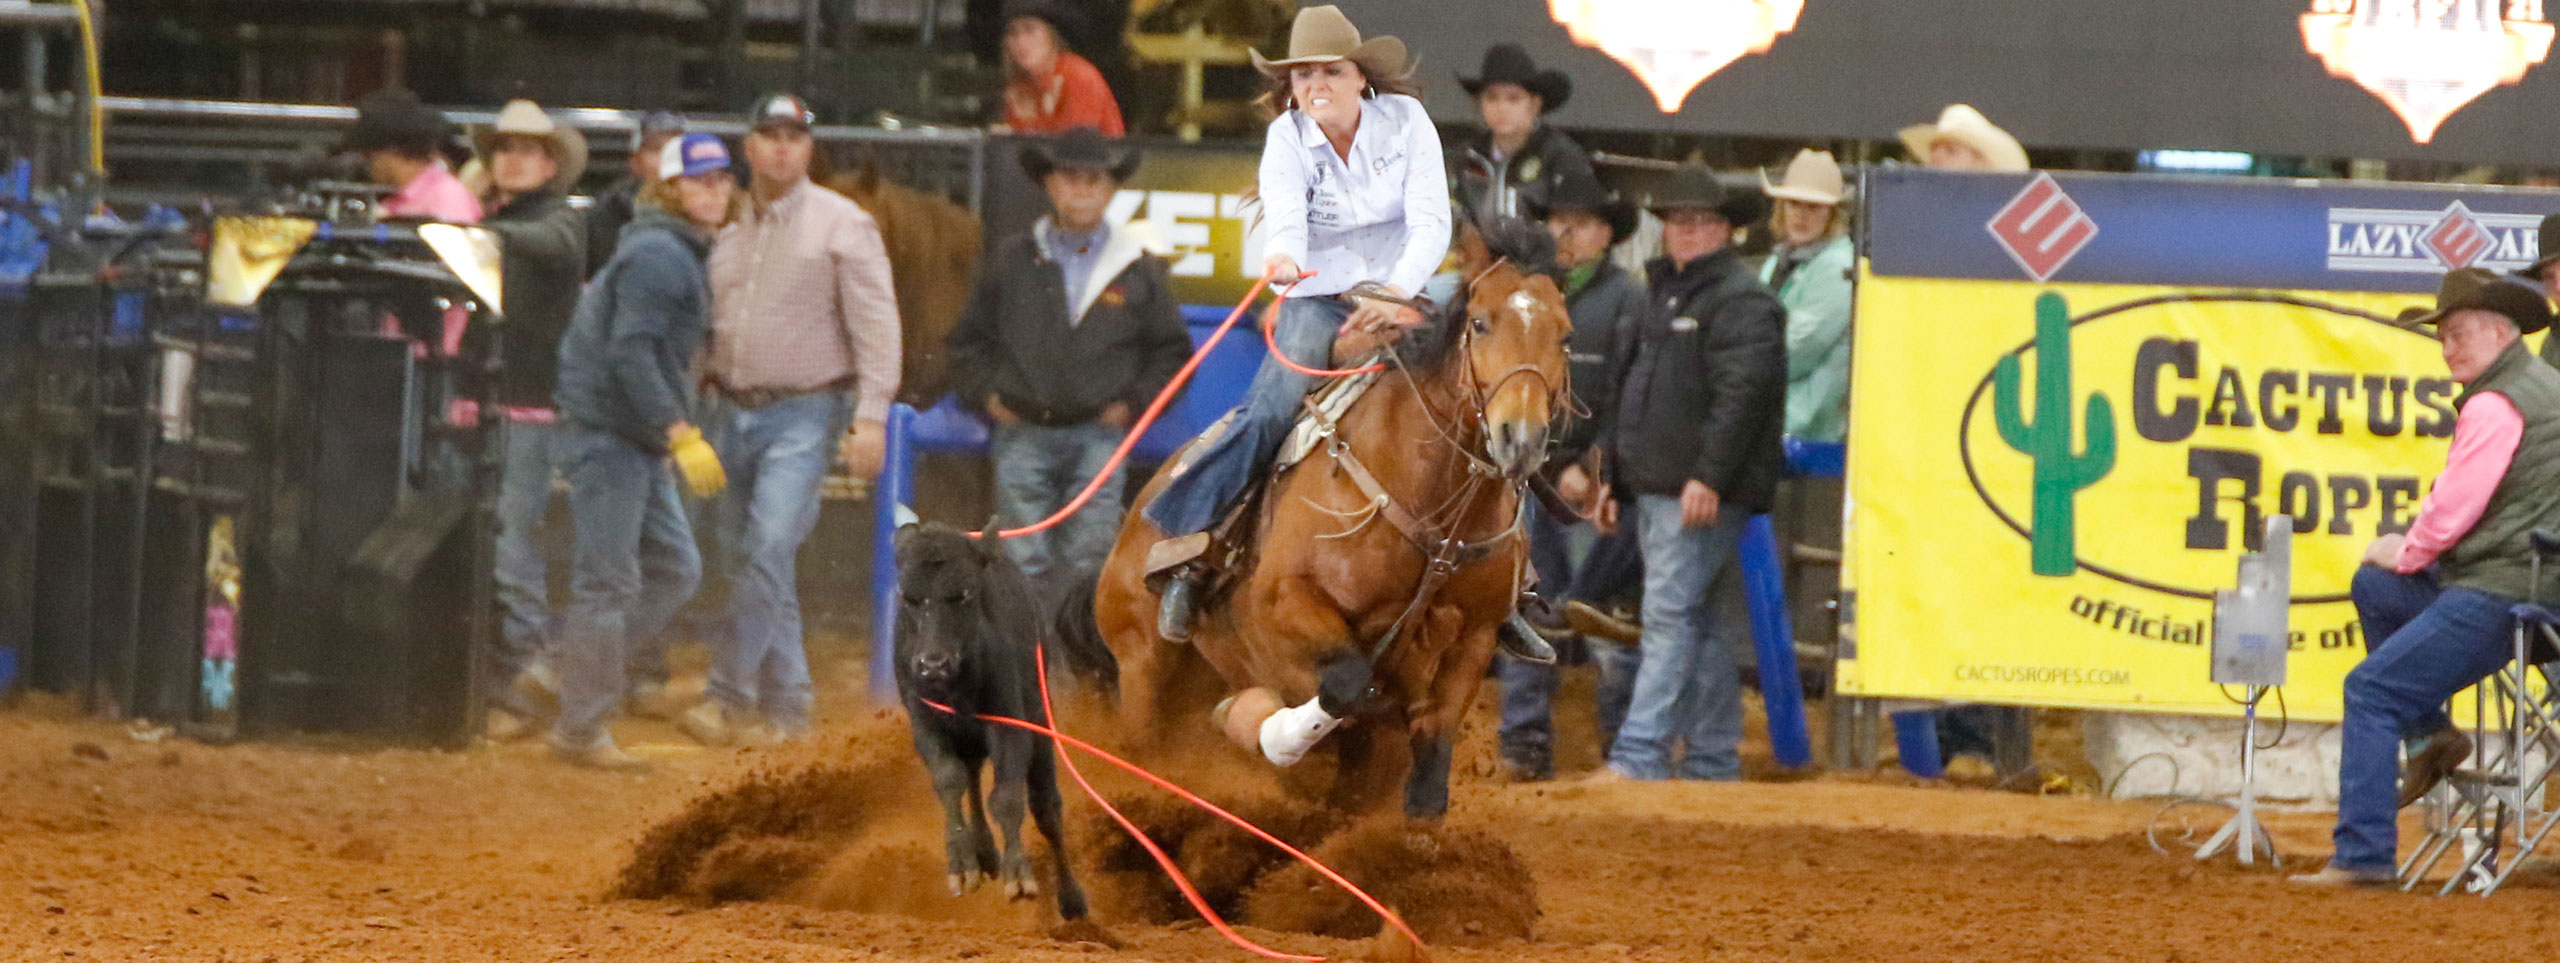 Complete Results From The 2021 BFI Week Charlie 1 Horse All-Girl Breakaway Roping